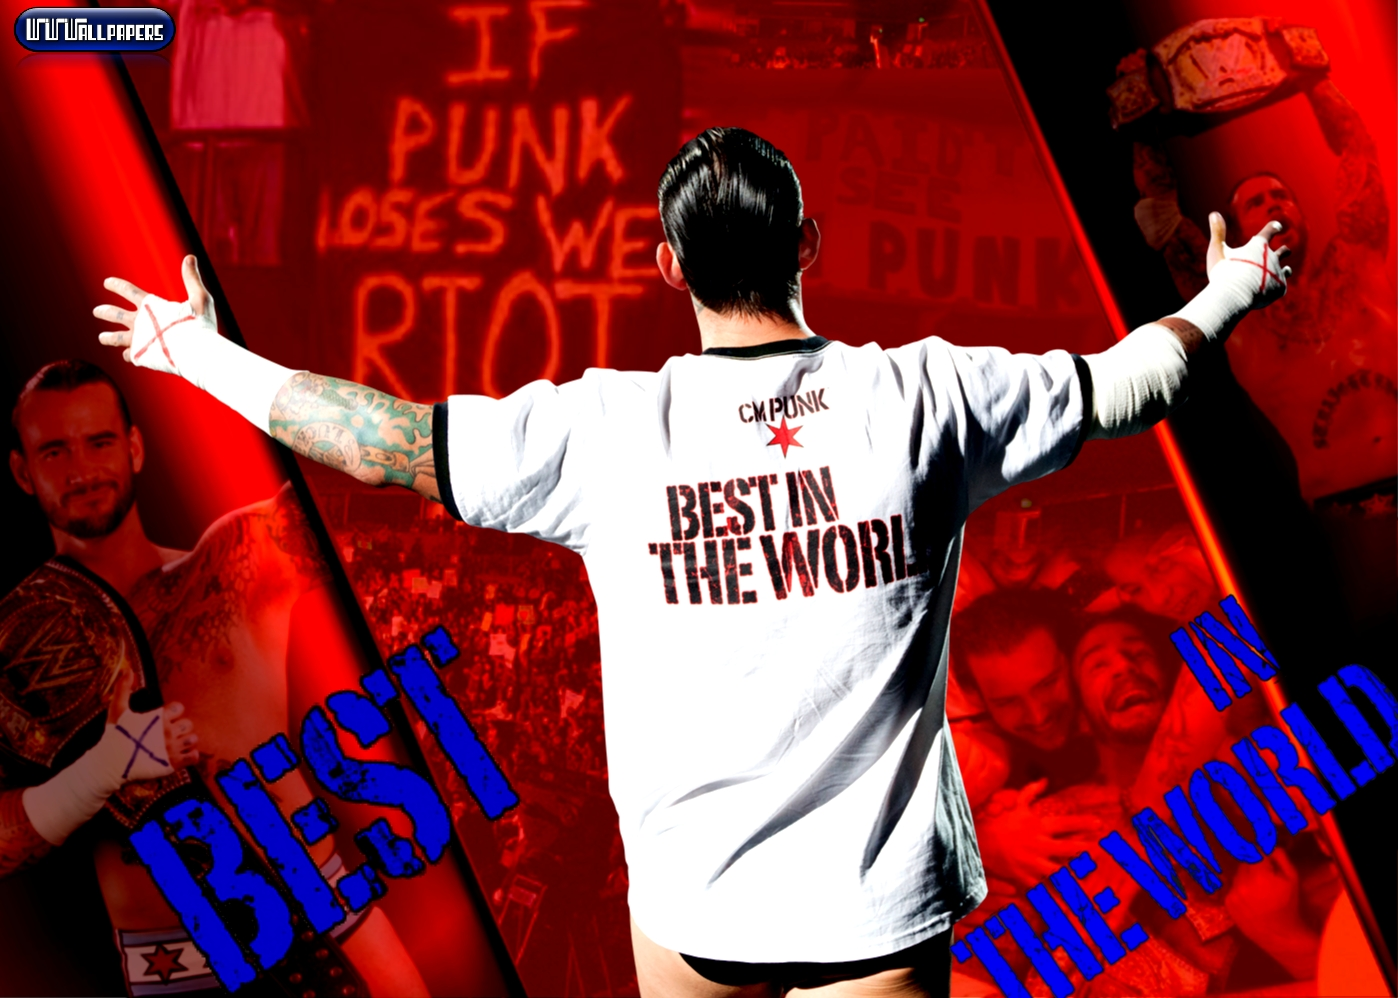 http://2.bp.blogspot.com/-MQWQkfsGEFw/Ts_nF-tRmeI/AAAAAAAABbw/4FZAhNarOd0/s1600/Cm%20punk%20wwe%20wallpaper%20best%20world%20champion%20voice.jpg